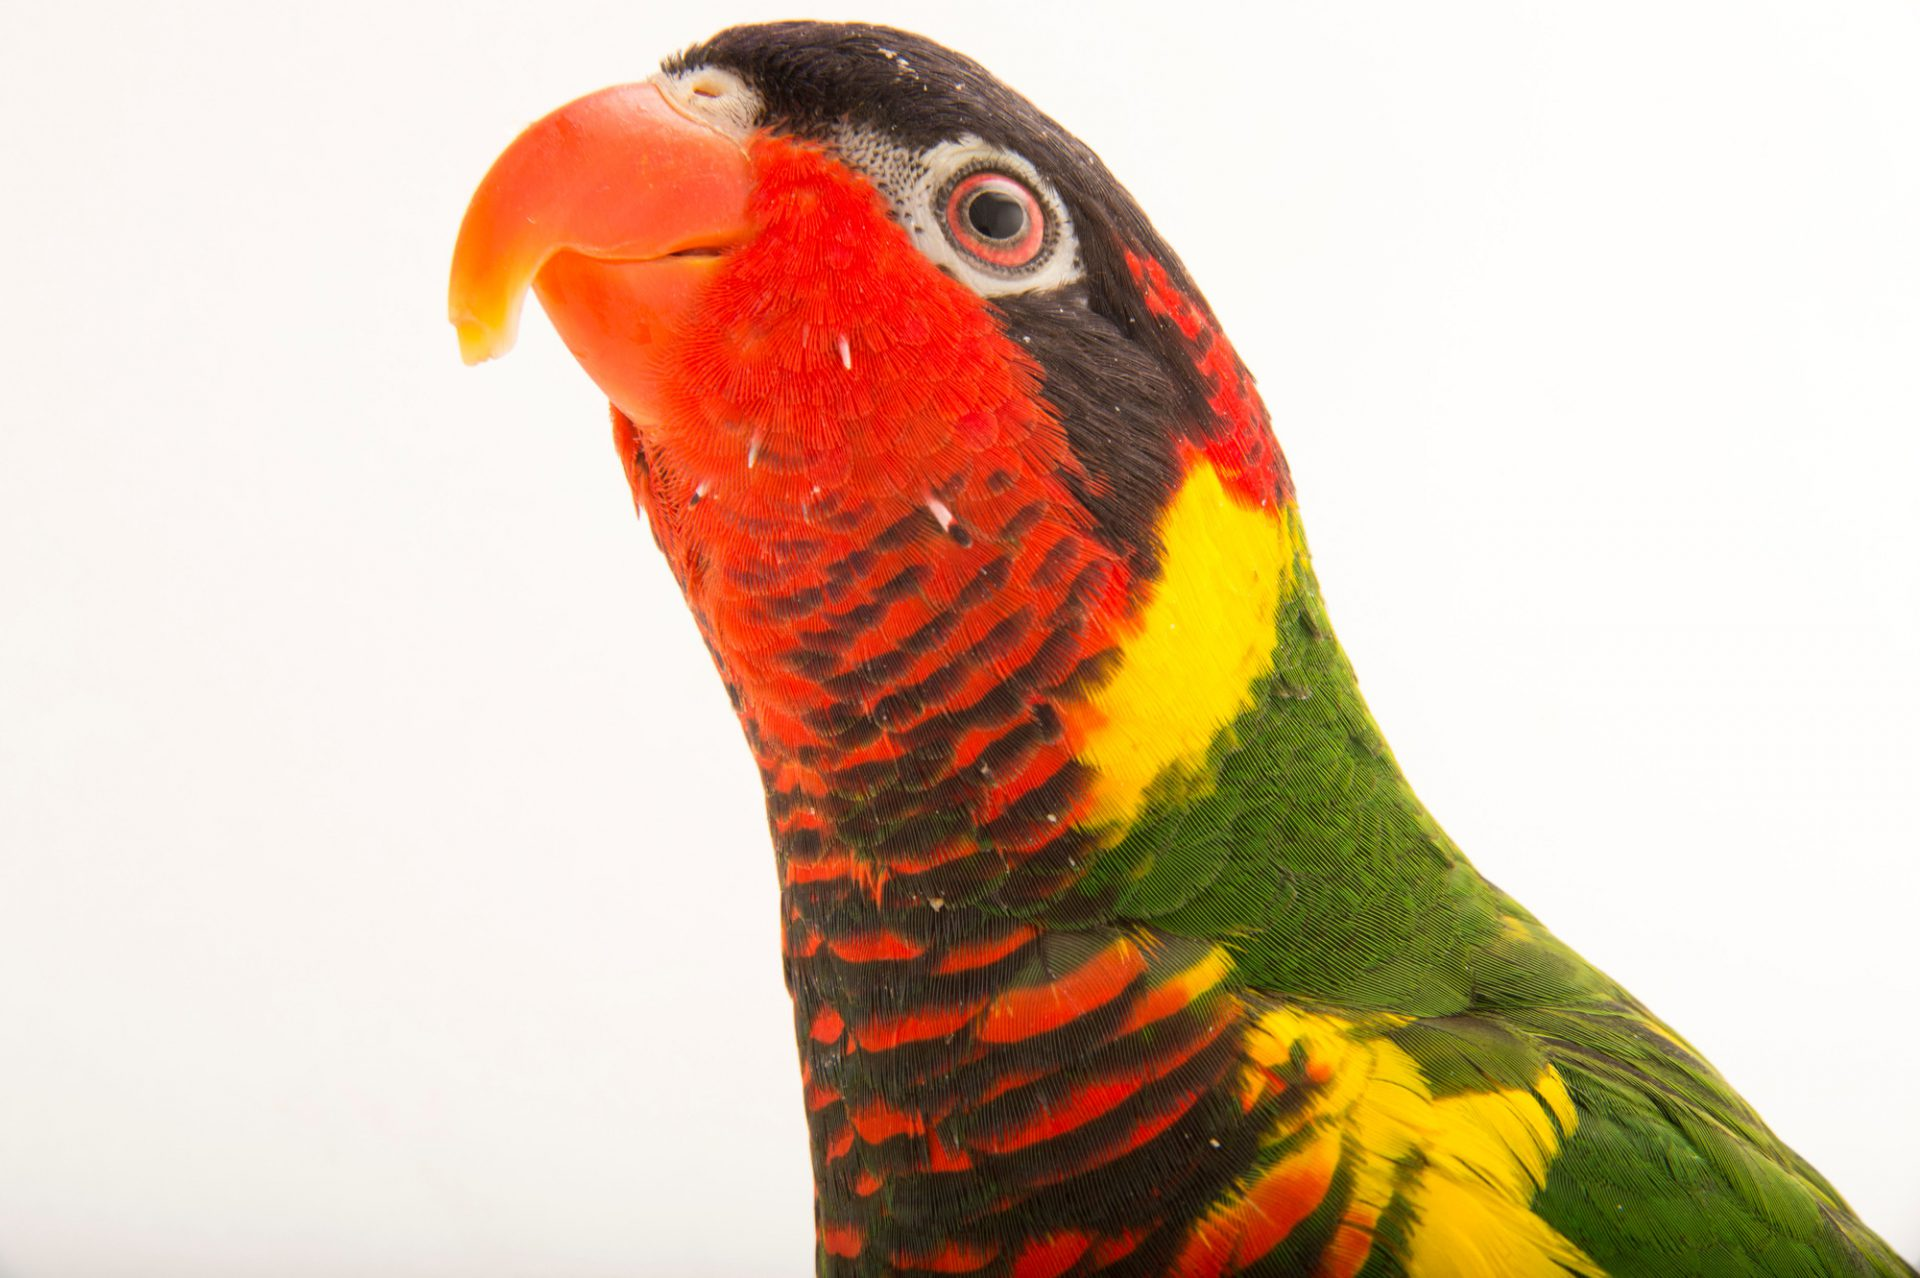 Photo: Aussie the ornate lorikeet (Trichoglossus ornatus) at the Boonshoft Museum of Discovery in Dayton, Ohio.